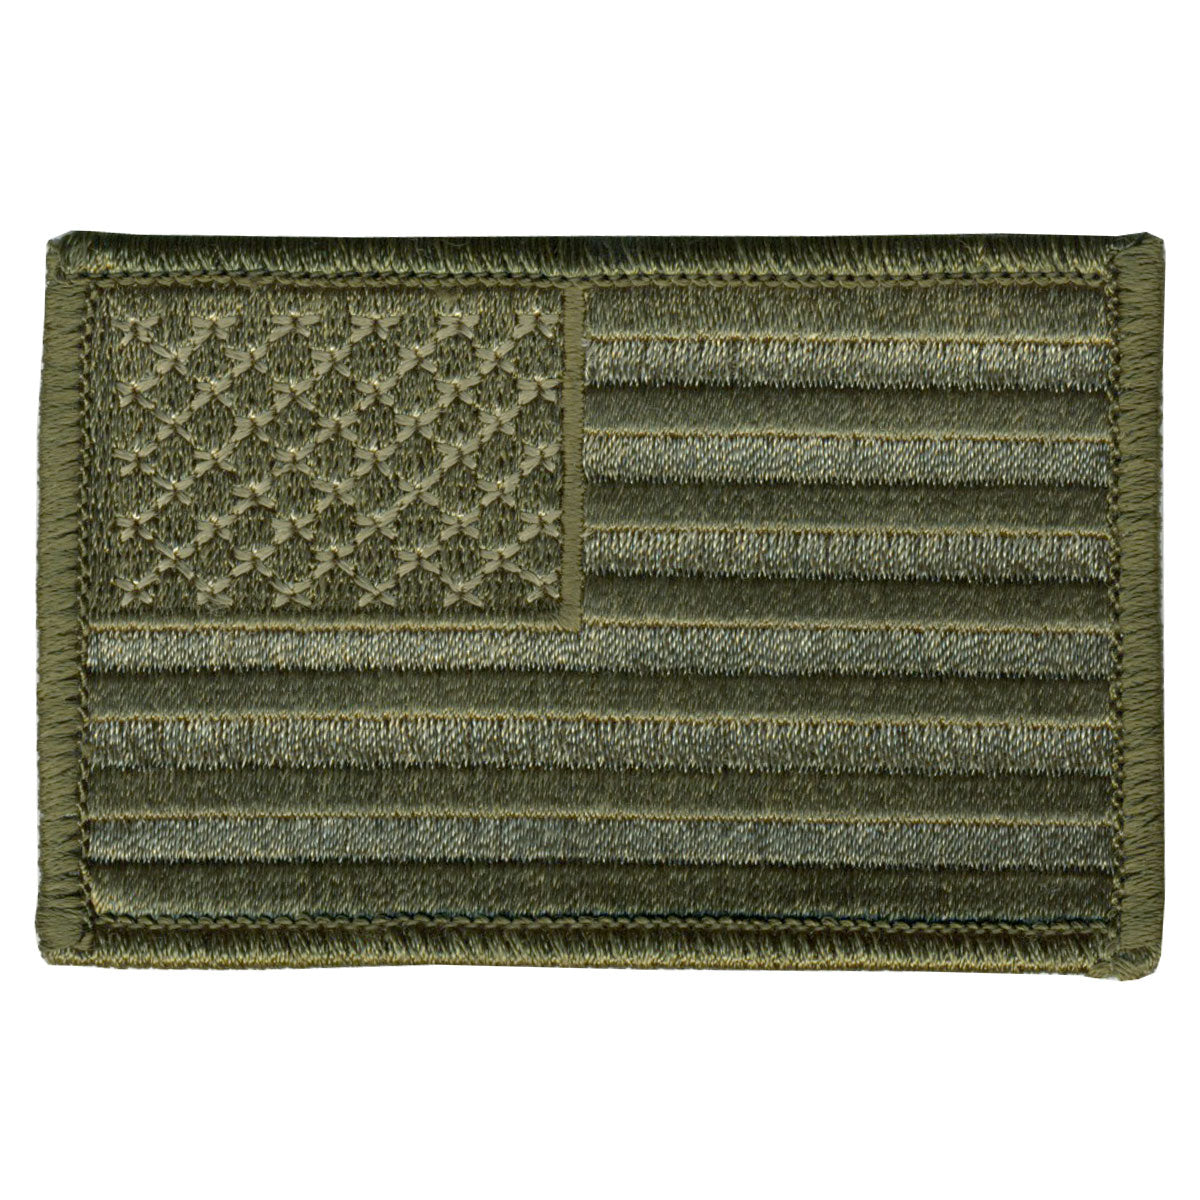 "Hot Leathers Woodland Style American Flag 3"" x 2"" Patch"